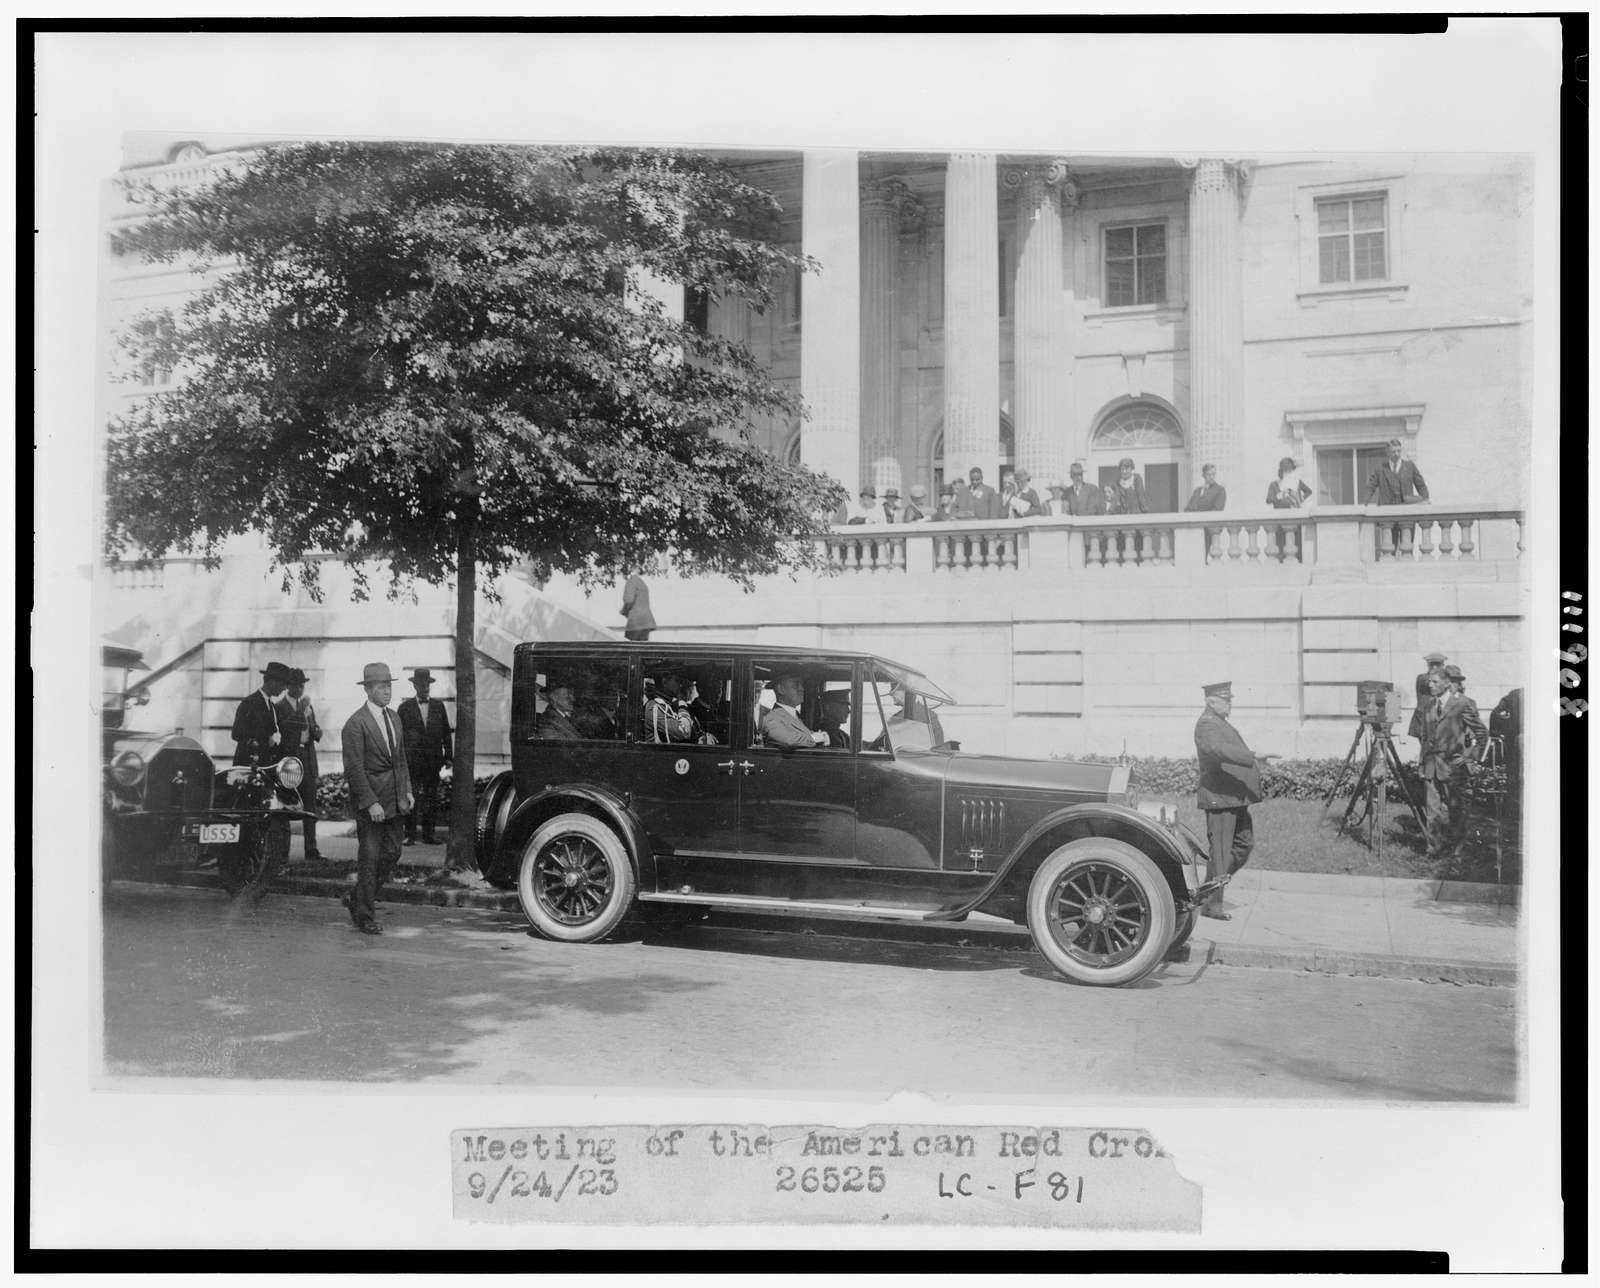 [President Coolidge in automobile at D.A.R. Hall, where he attended a meeting of the American Red Cross]